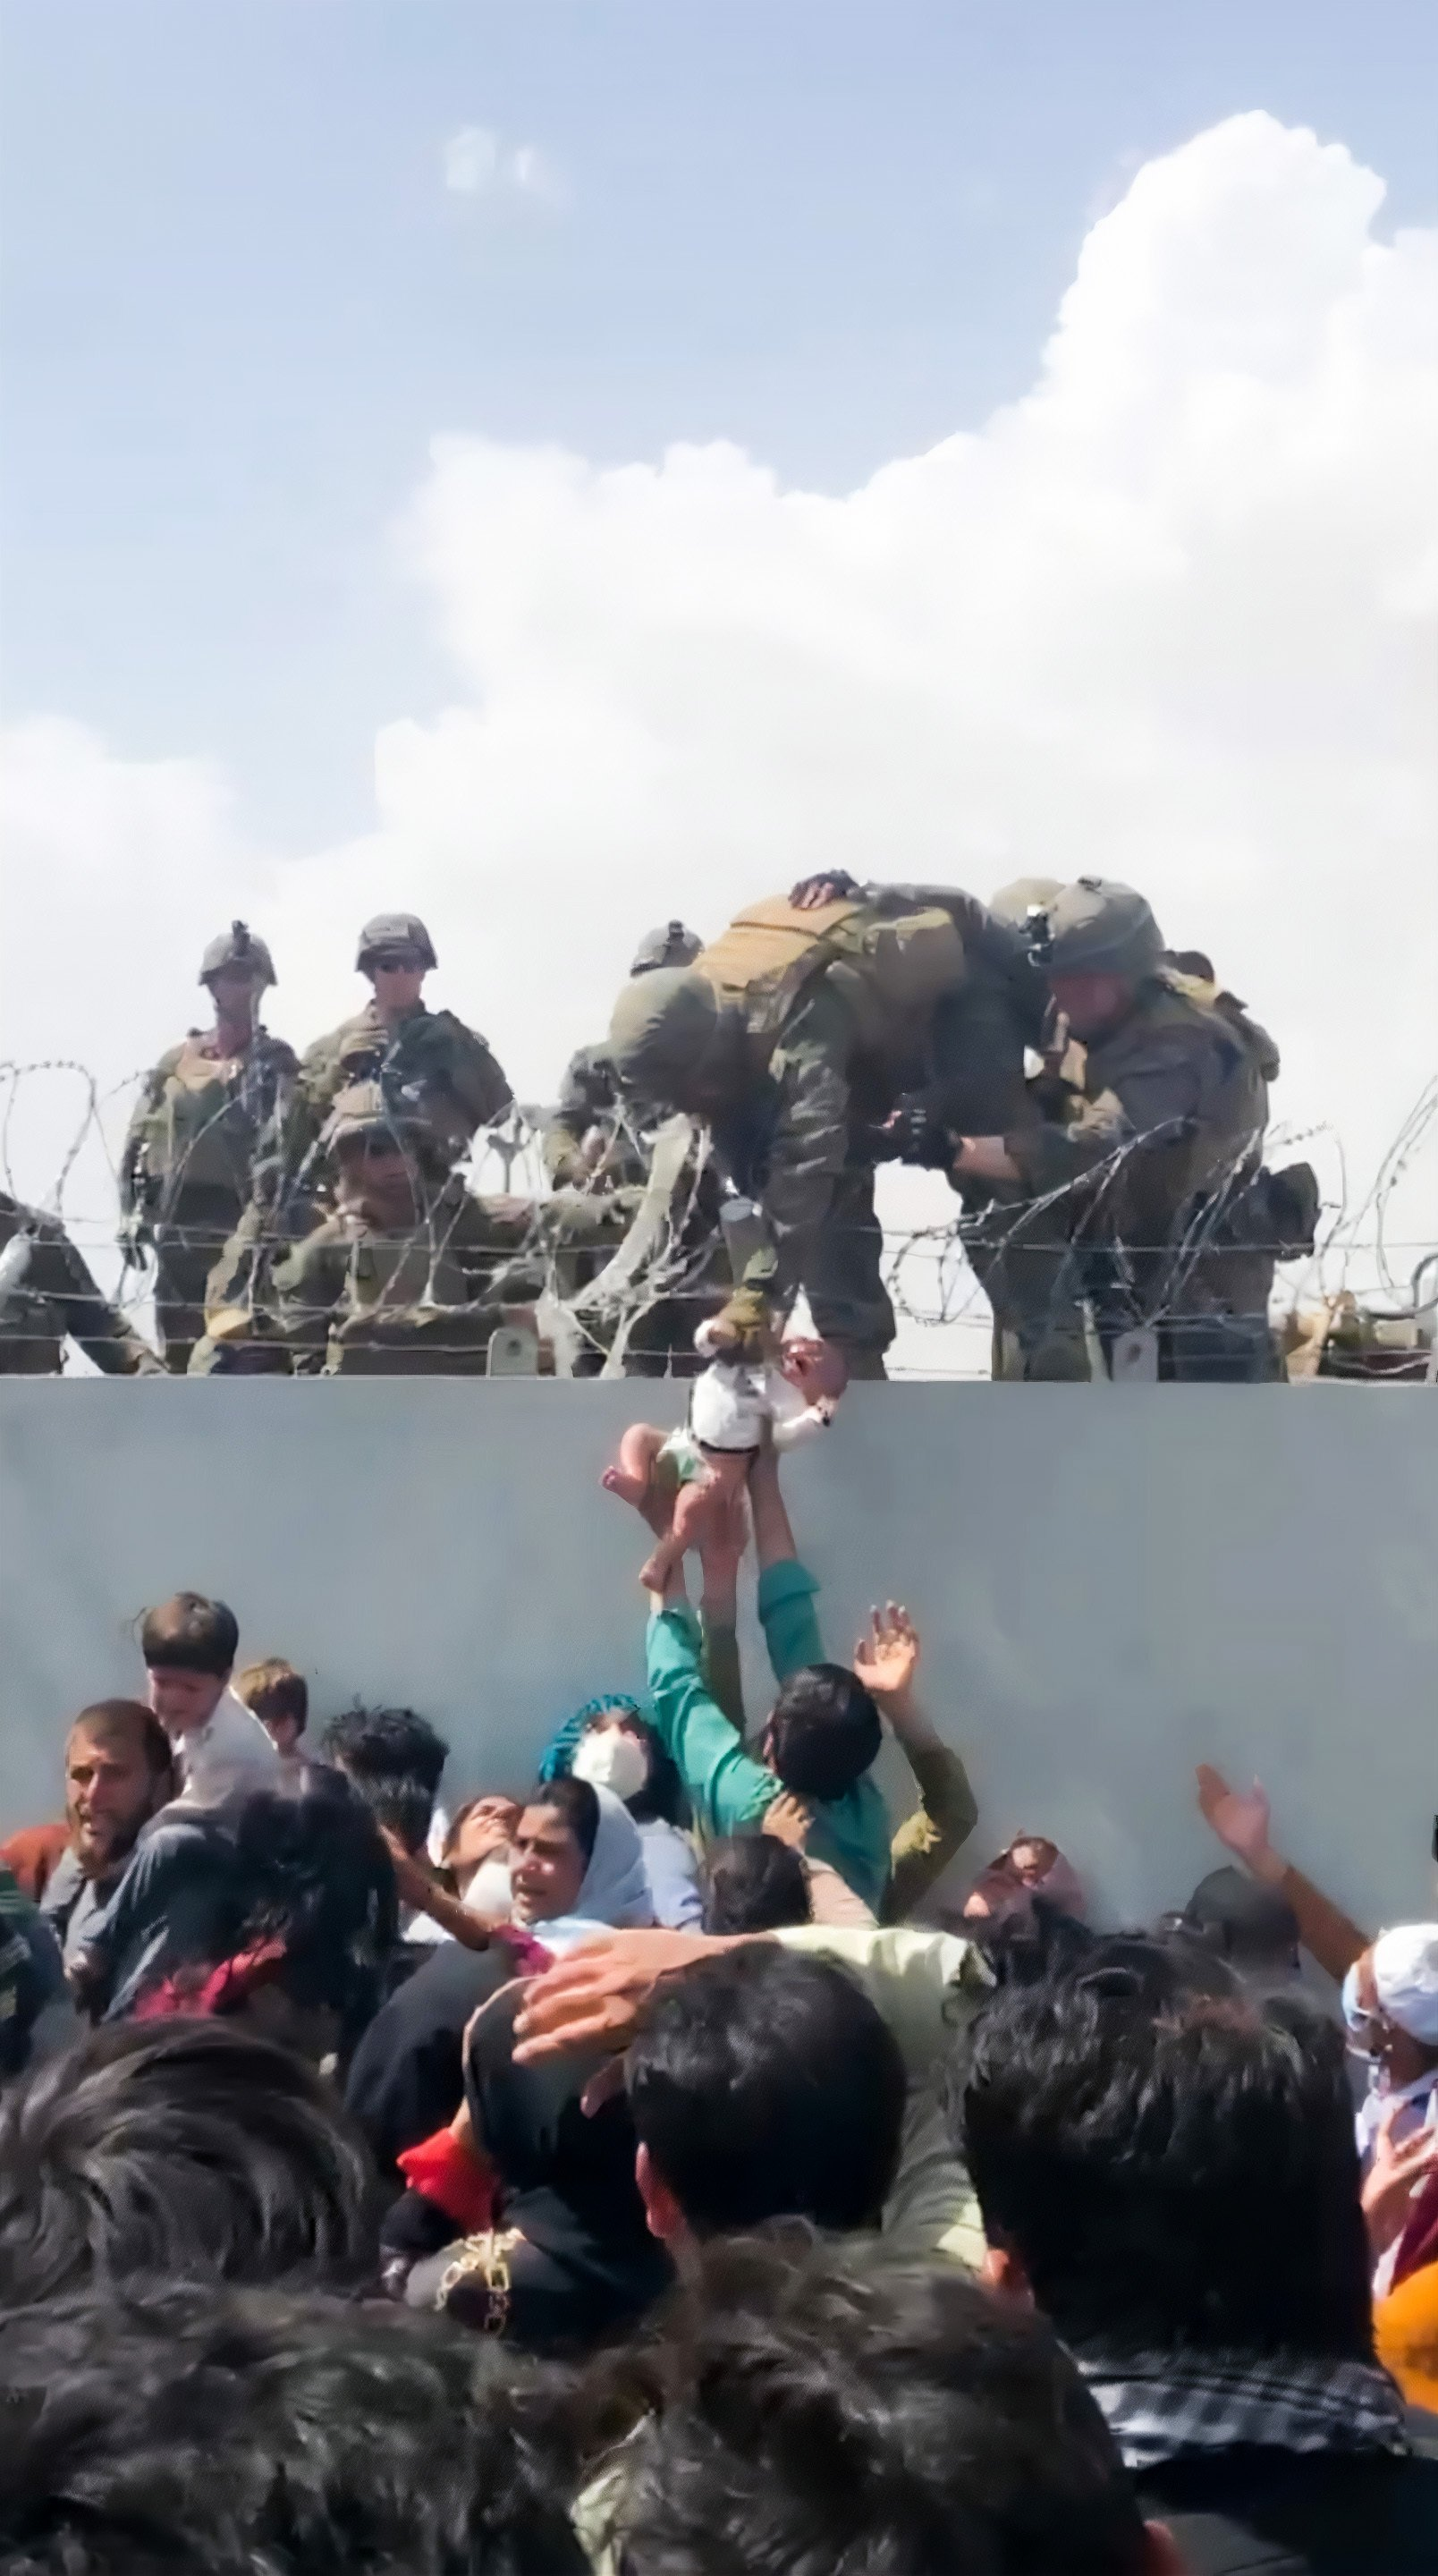 A baby is handed over to the American army over the perimeter wall of the airport for it to be evacuated, in Kabul, Afghanistan, August 19, 2021. (Reuters Photo)